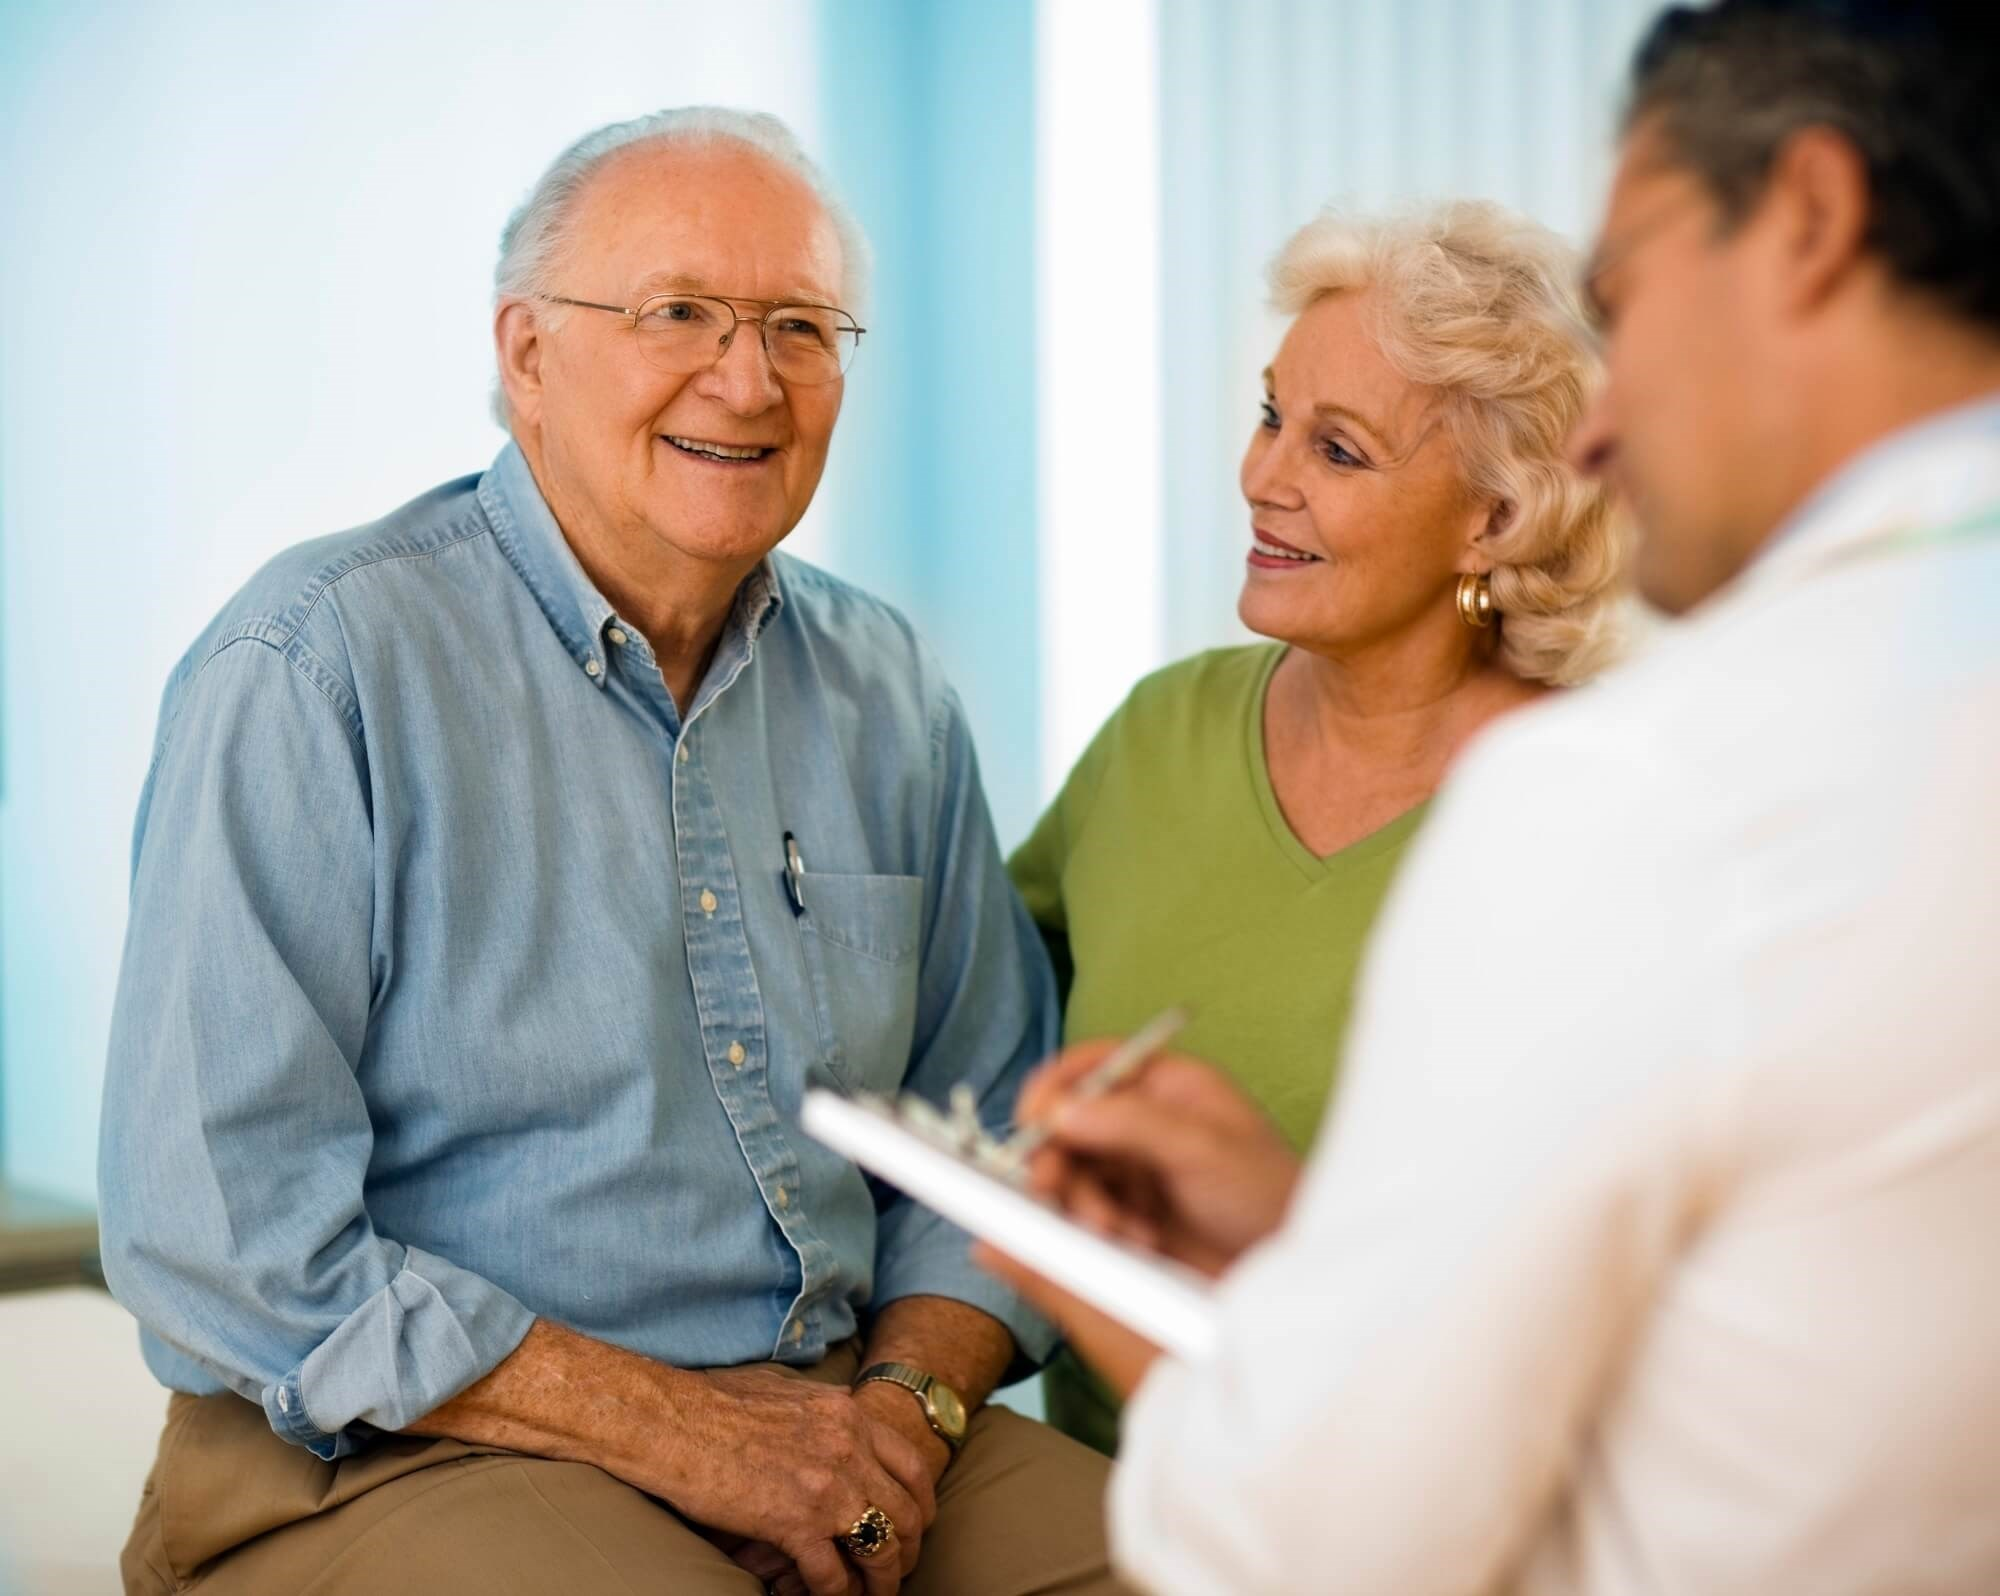 Voice Therapy Improves Speech Disorder Symptoms in Parkinson Disease